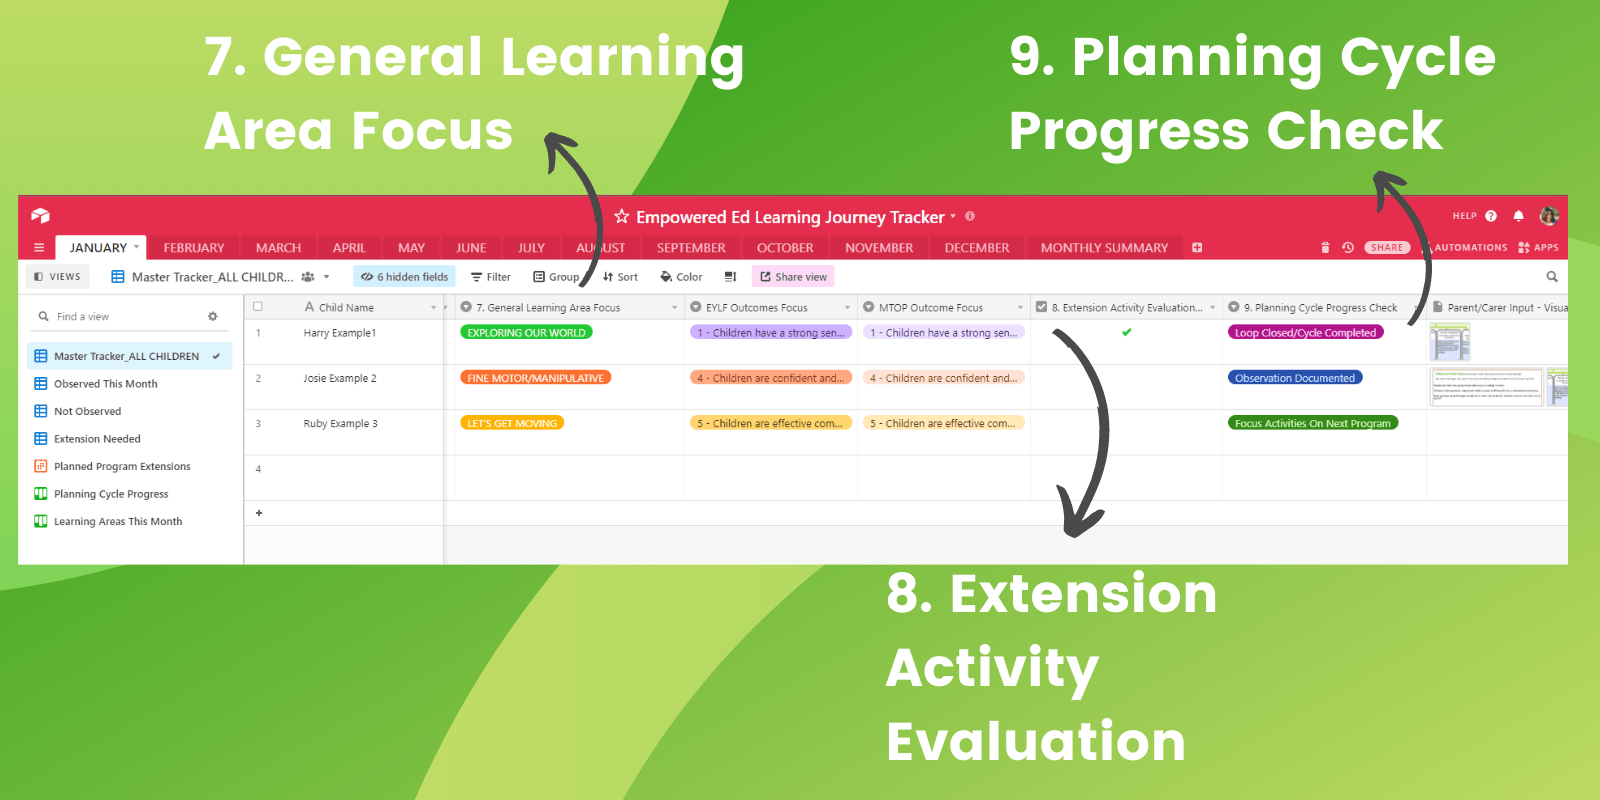 Keep track of your observations each month and how you are using that information step by step to close the loop on your planning cycle.